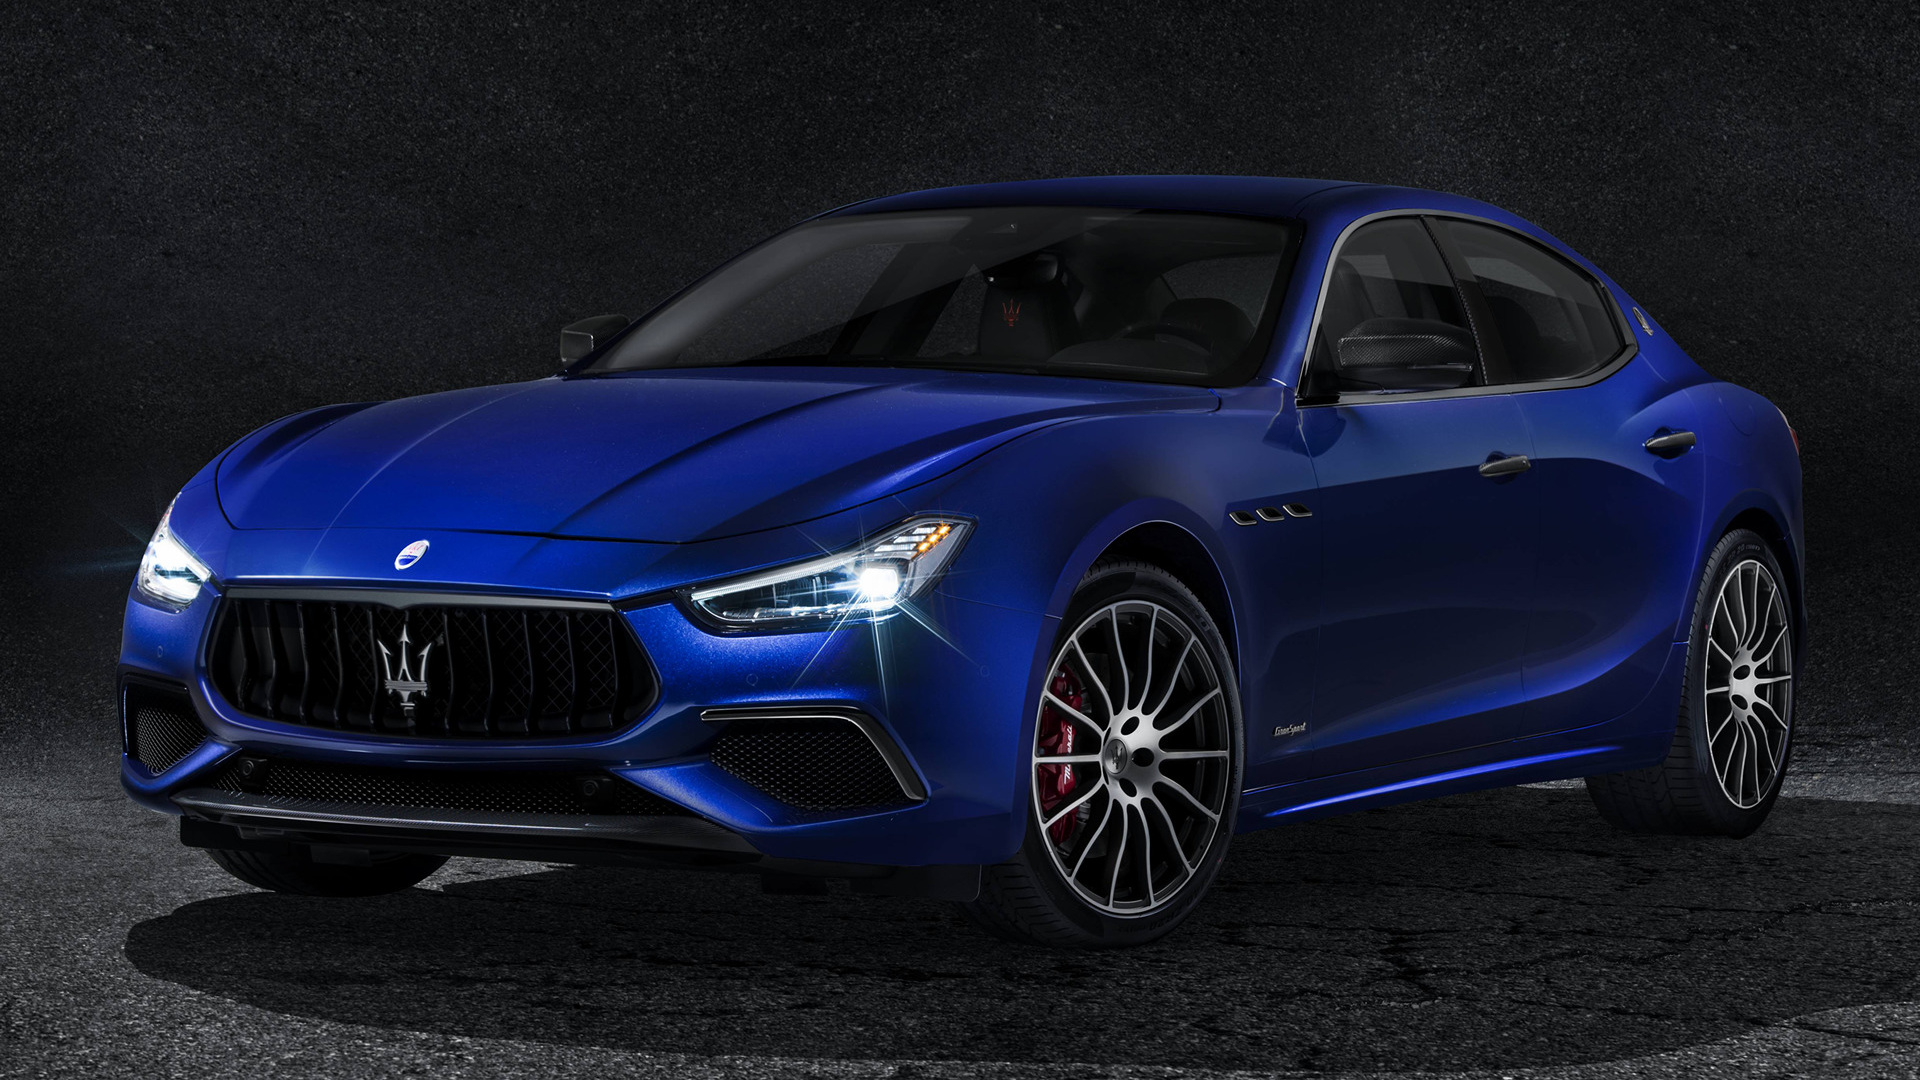 Maserati Ghibli Maserati Ghibli Wallpapers Pictures Images